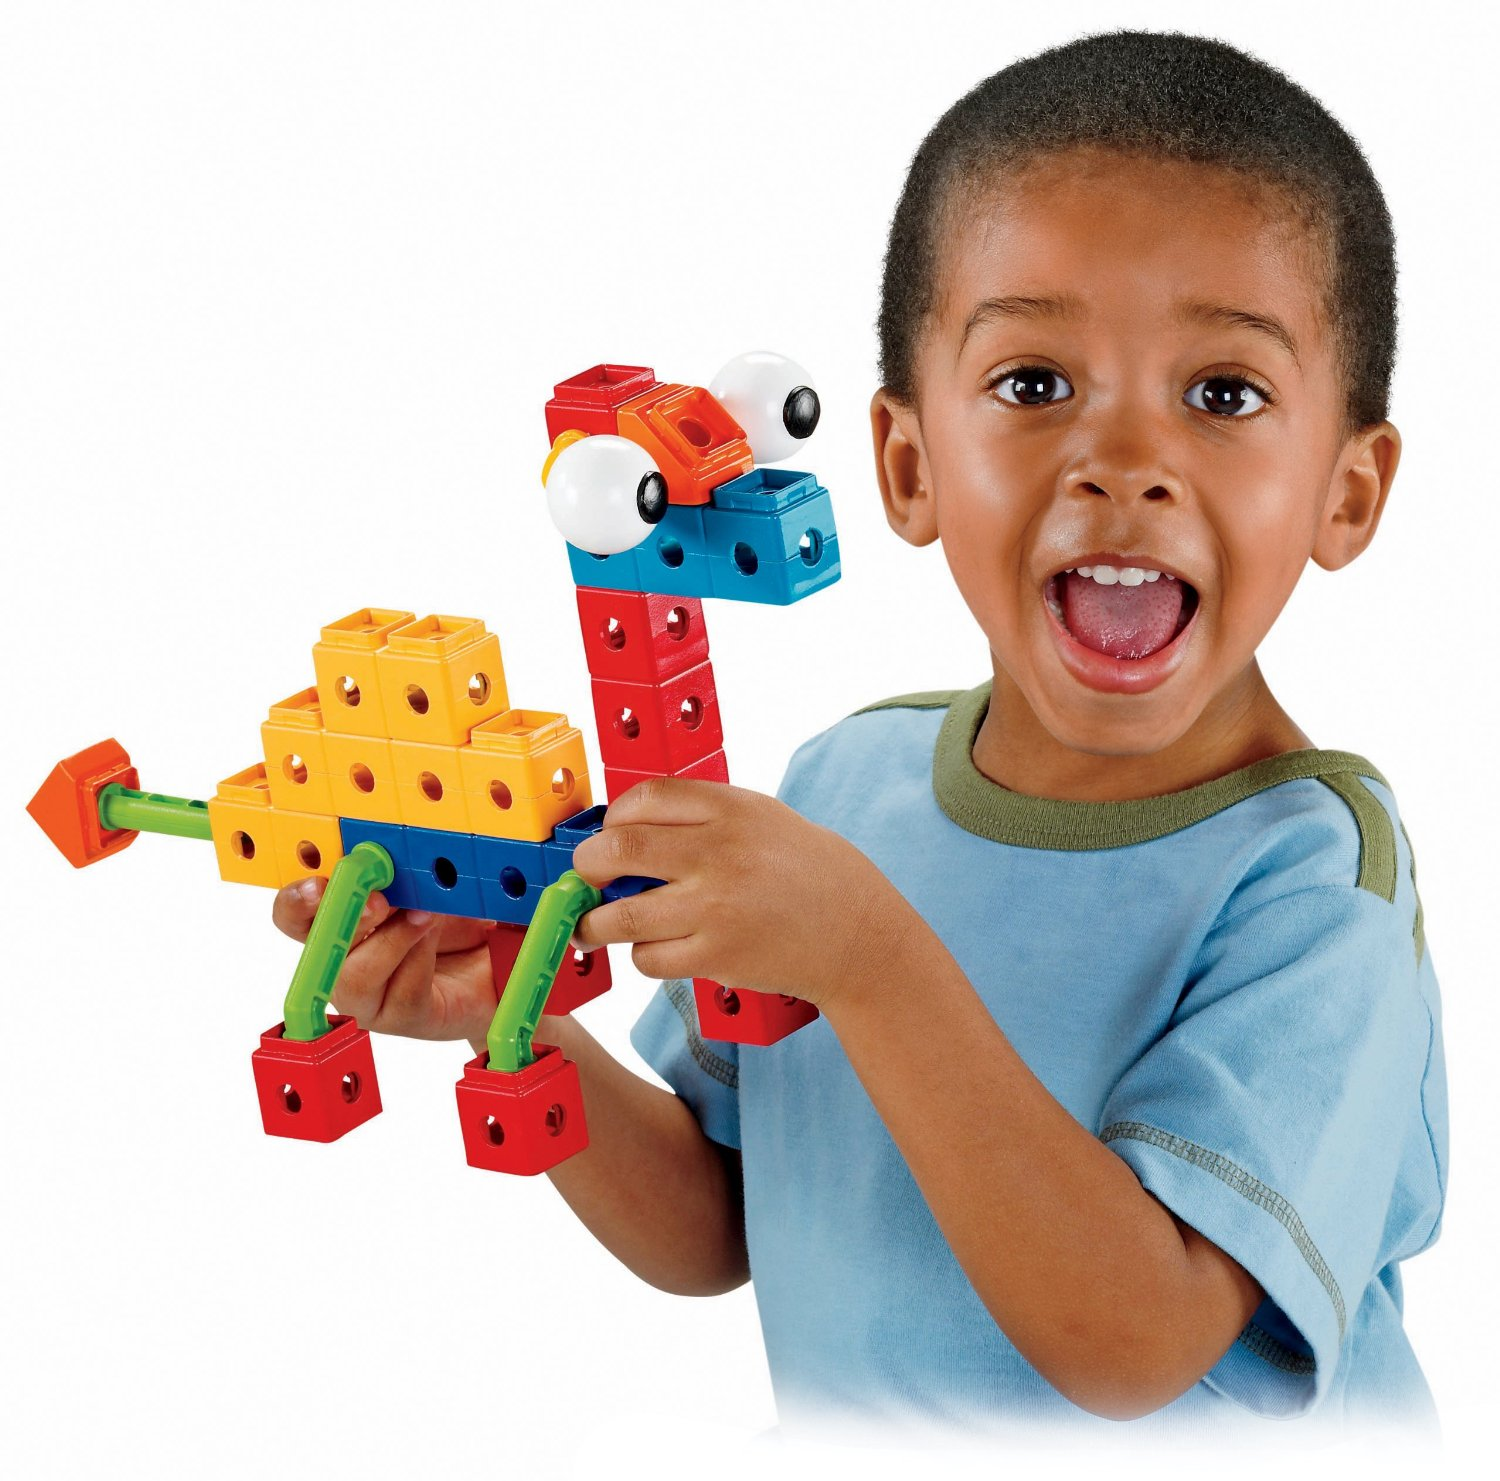 15 Of The Best Construction Toys For Kids